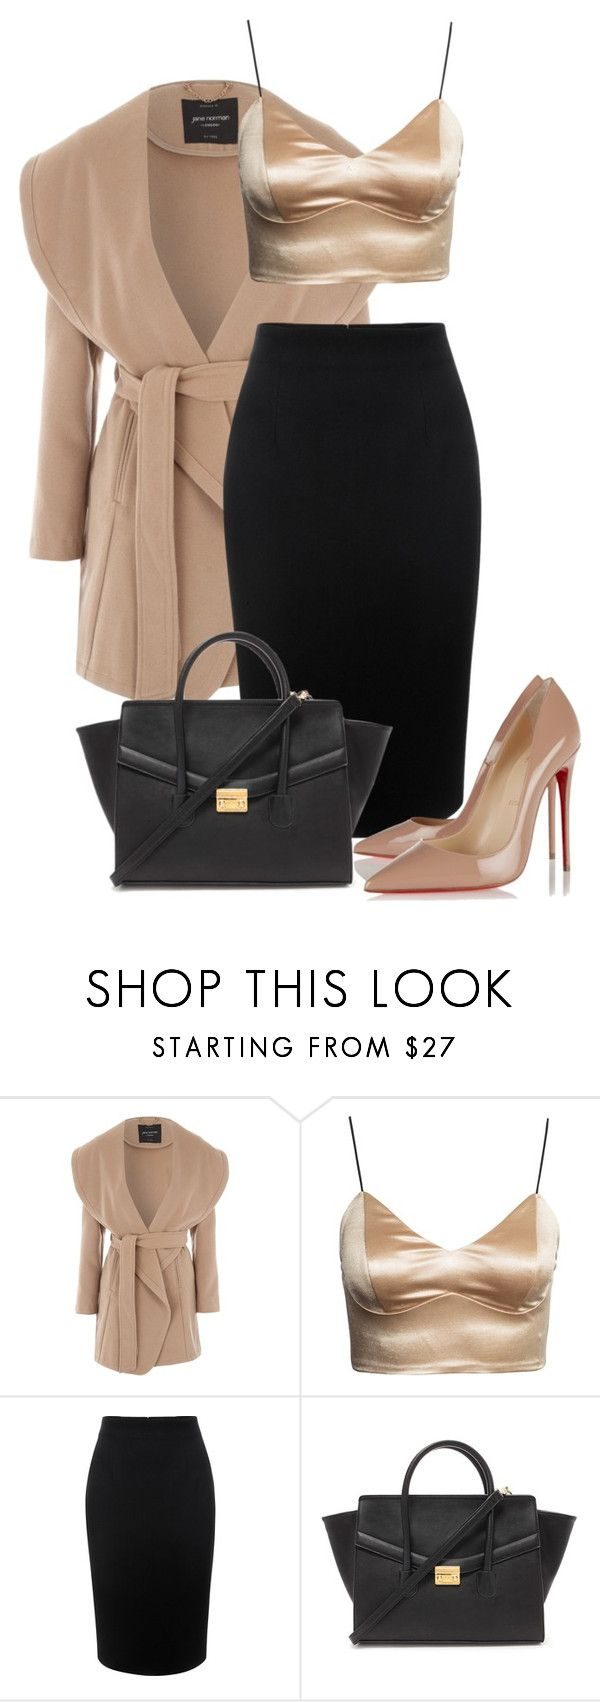 """""""Untitled #244"""" by larissamucilo13 on Polyvore featuring Jane Norman, Alexander McQueen, Forever 21 and Christian Louboutin"""